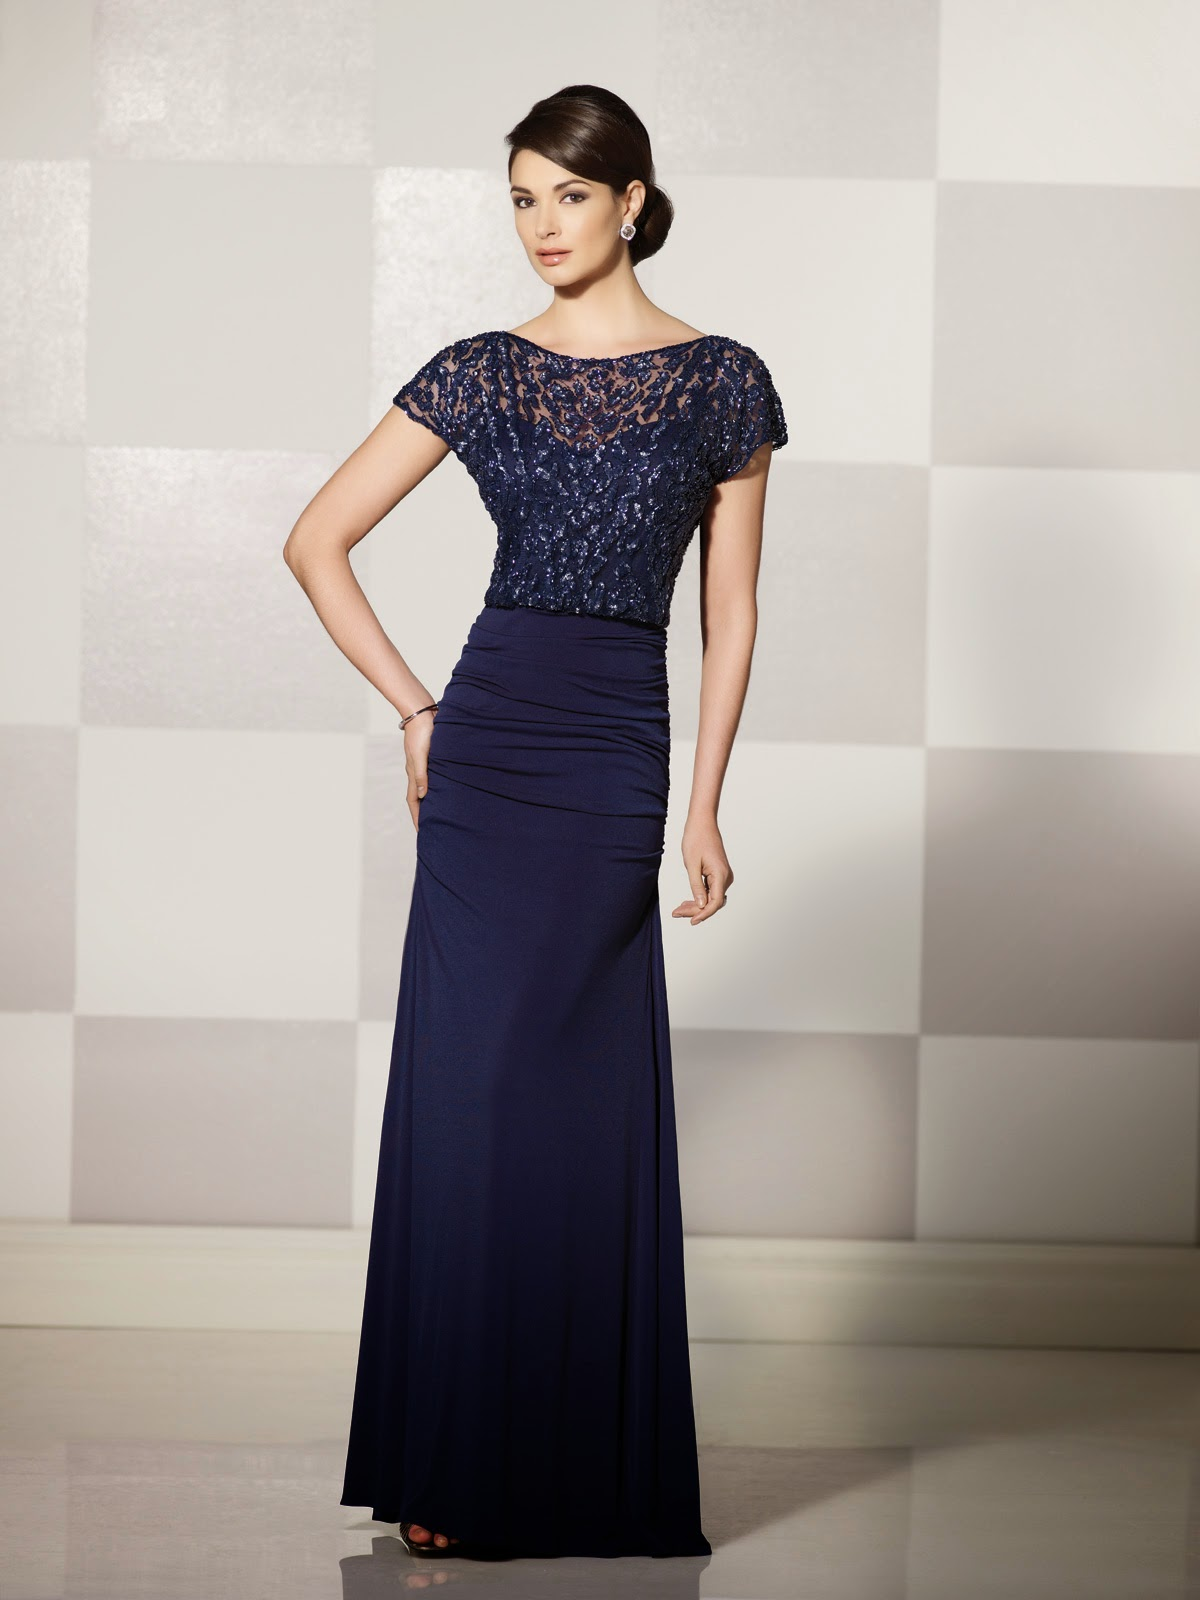 2014 Fall Mother Of The Bride Dresses A line gown along with